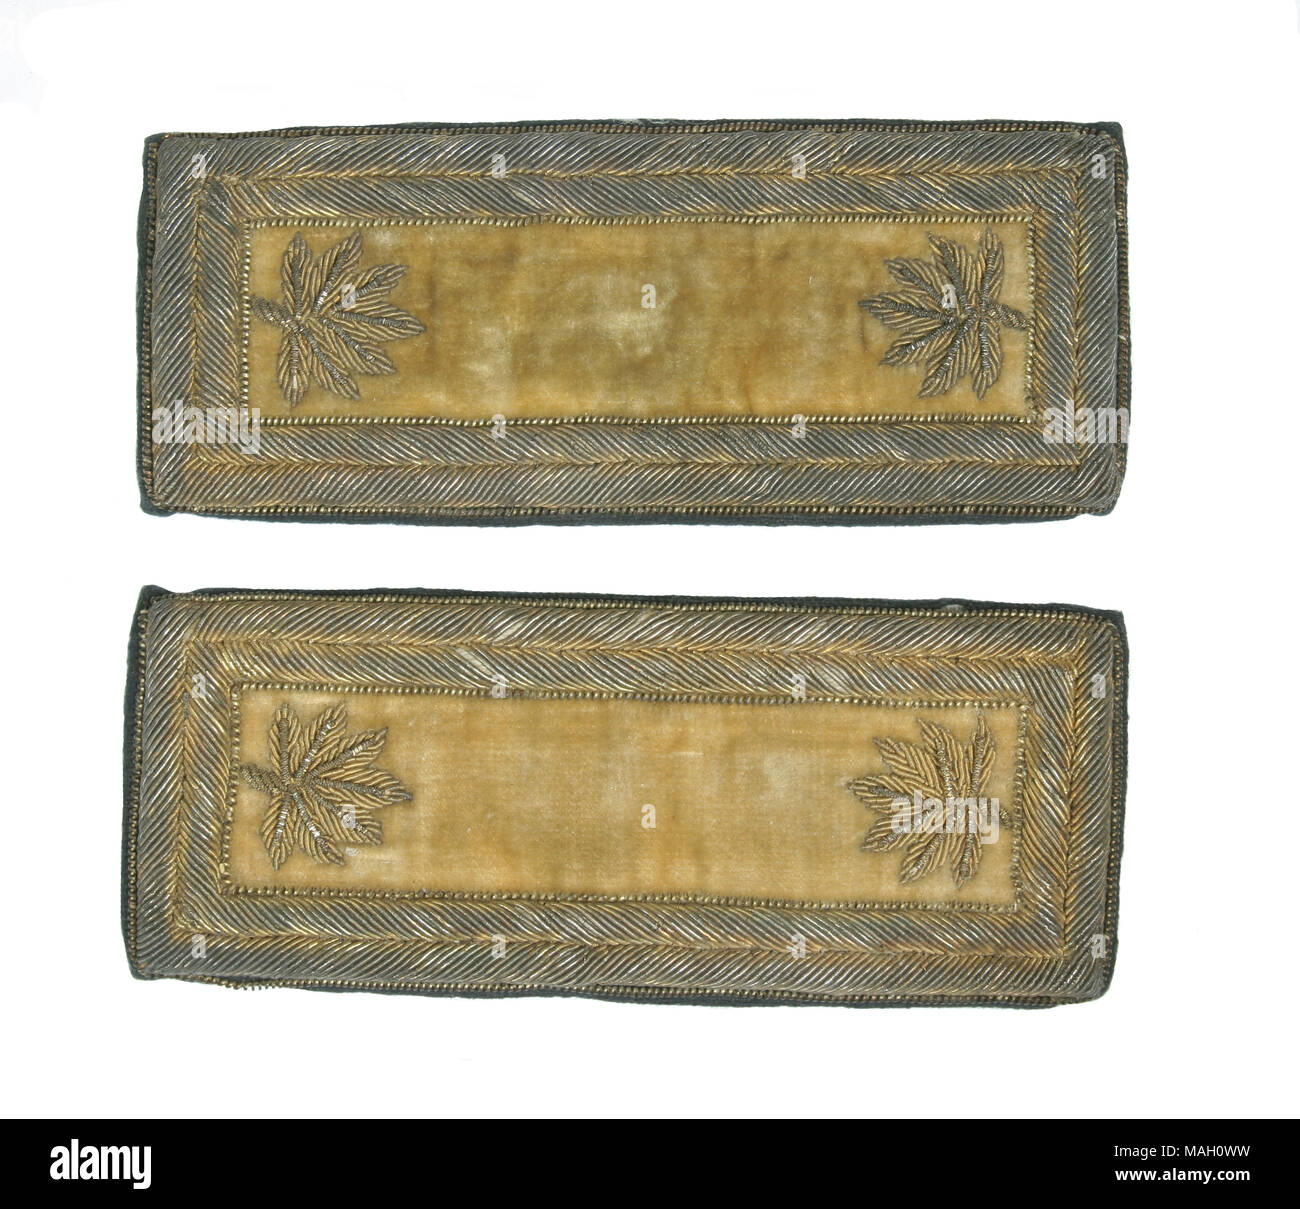 American Civil War: Union Army, A pair of shoulder straps for a Lt. Colonel of Cavalry in the Union Army - Stock Image